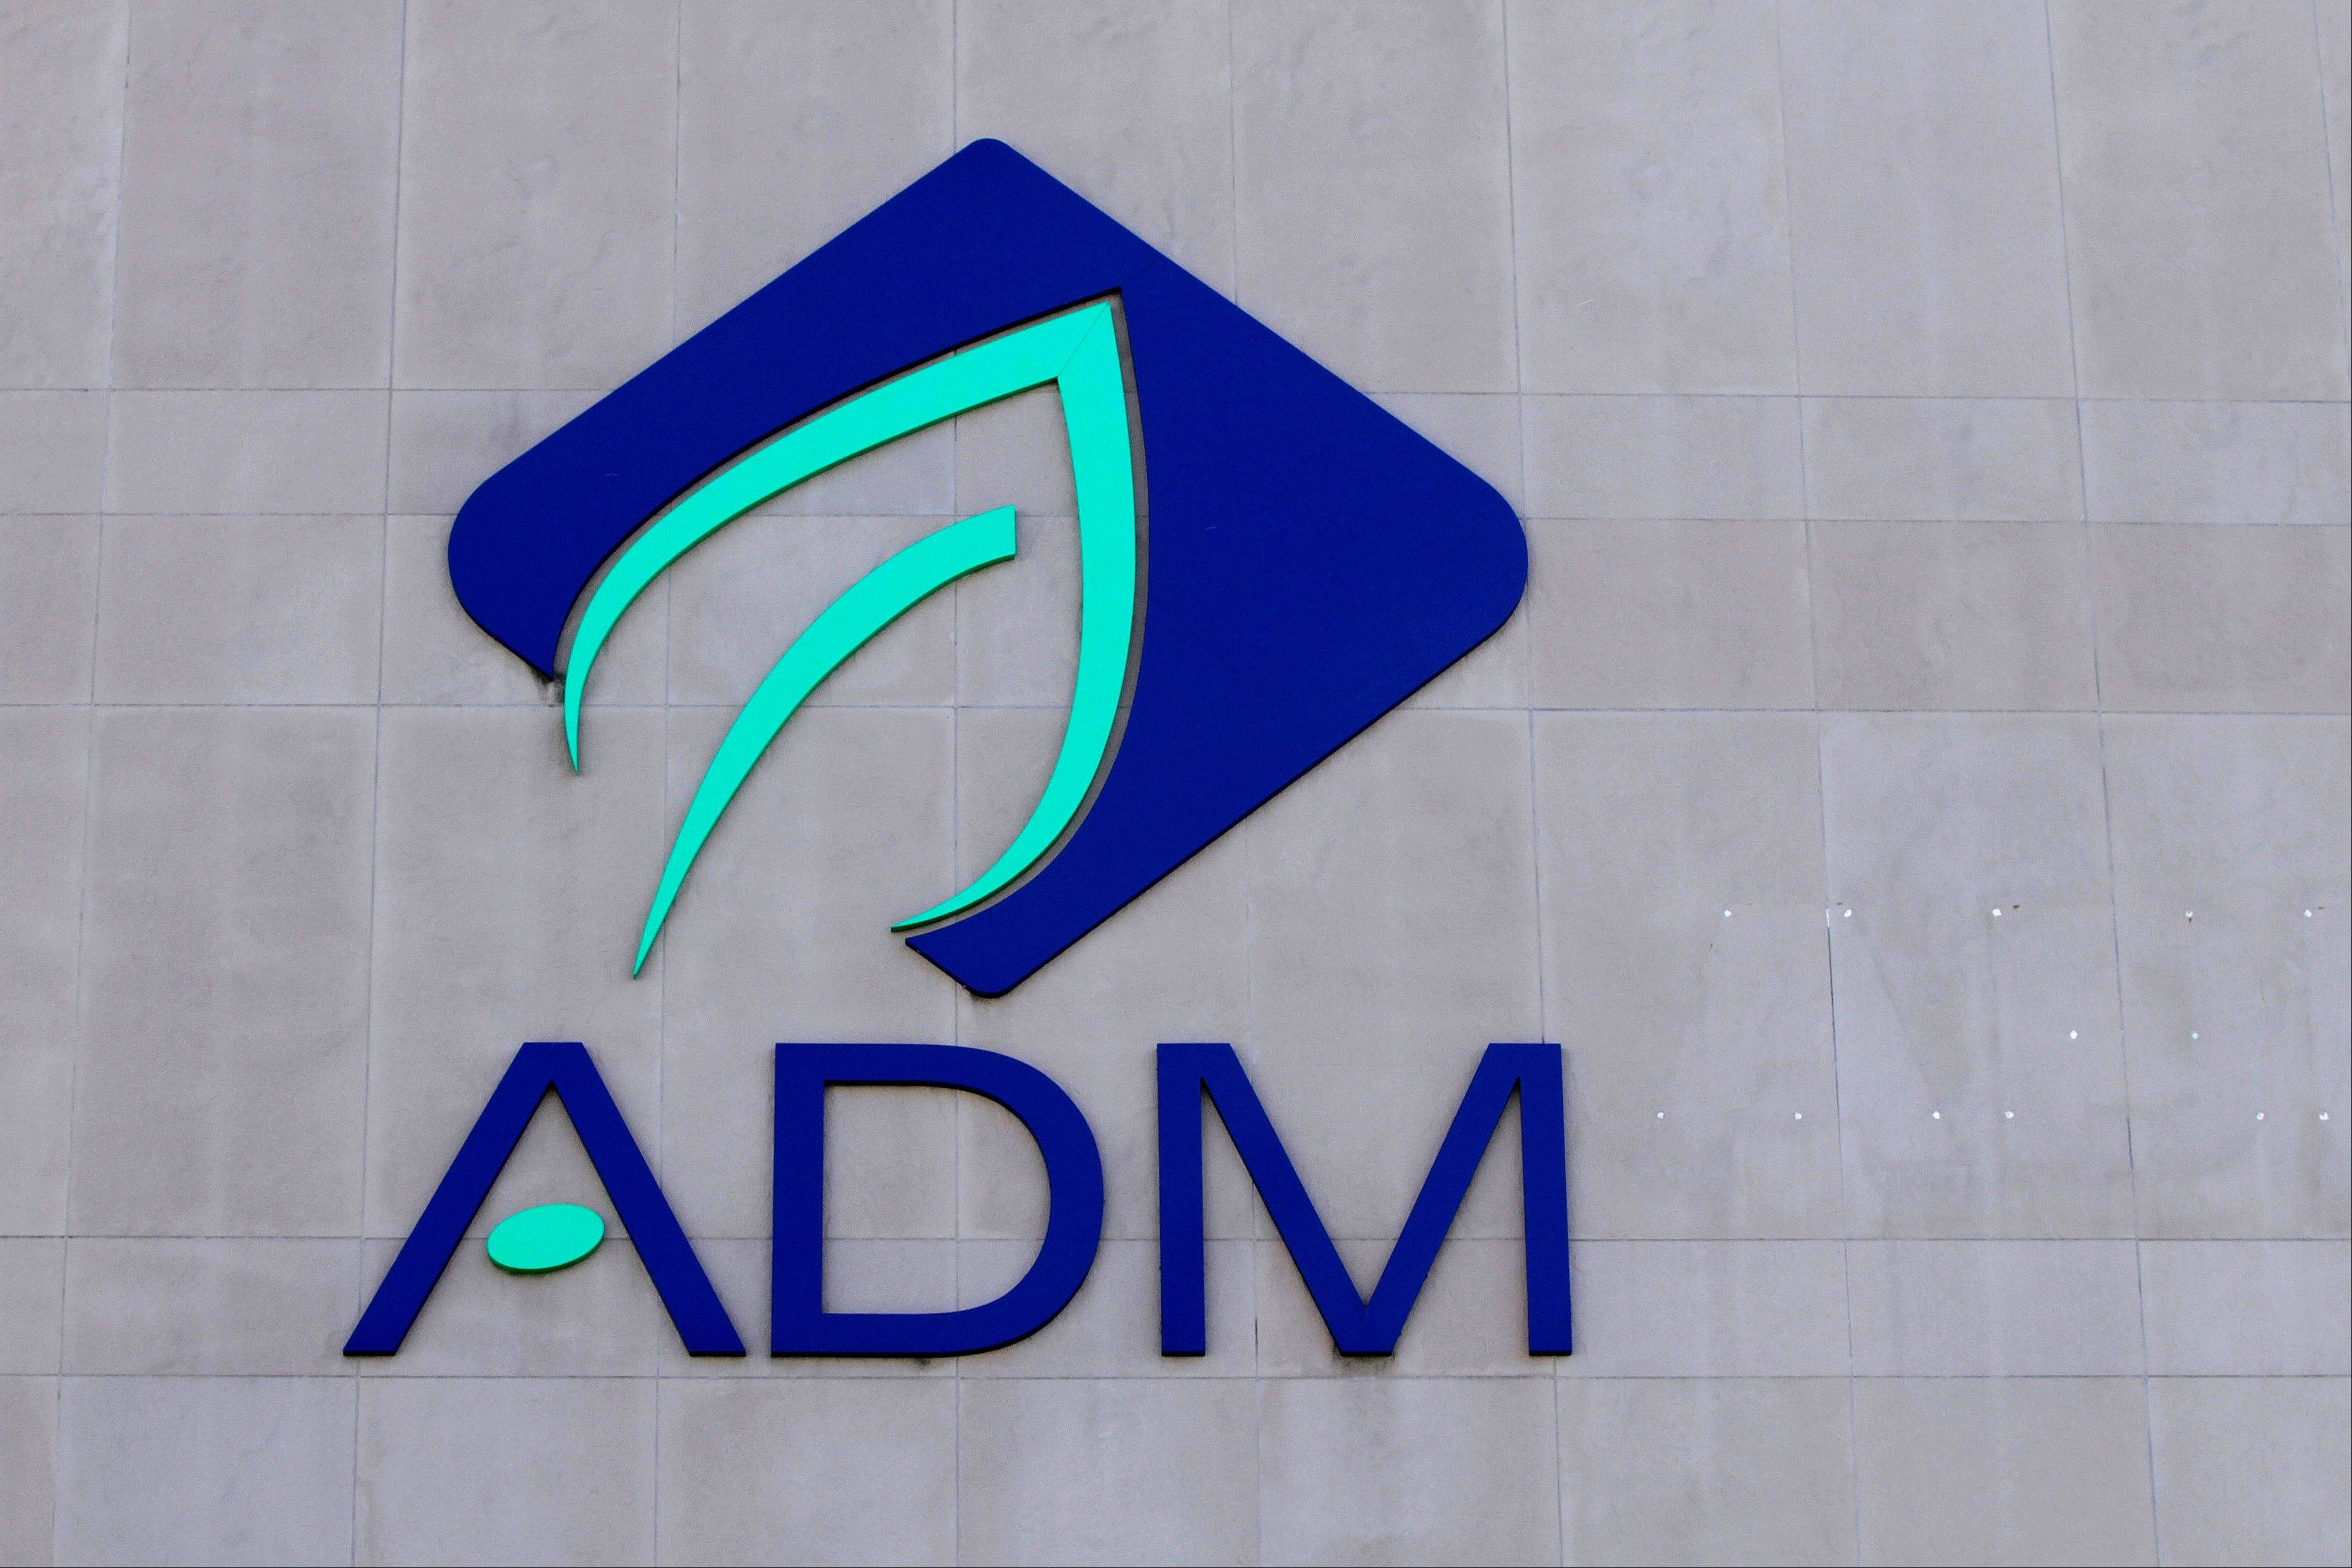 St. Louis and Chicago are now making a pitch for the suddenly free-agent global headquarters of the agribusiness Archer Daniels Midland Company, which is currently in Decatur.